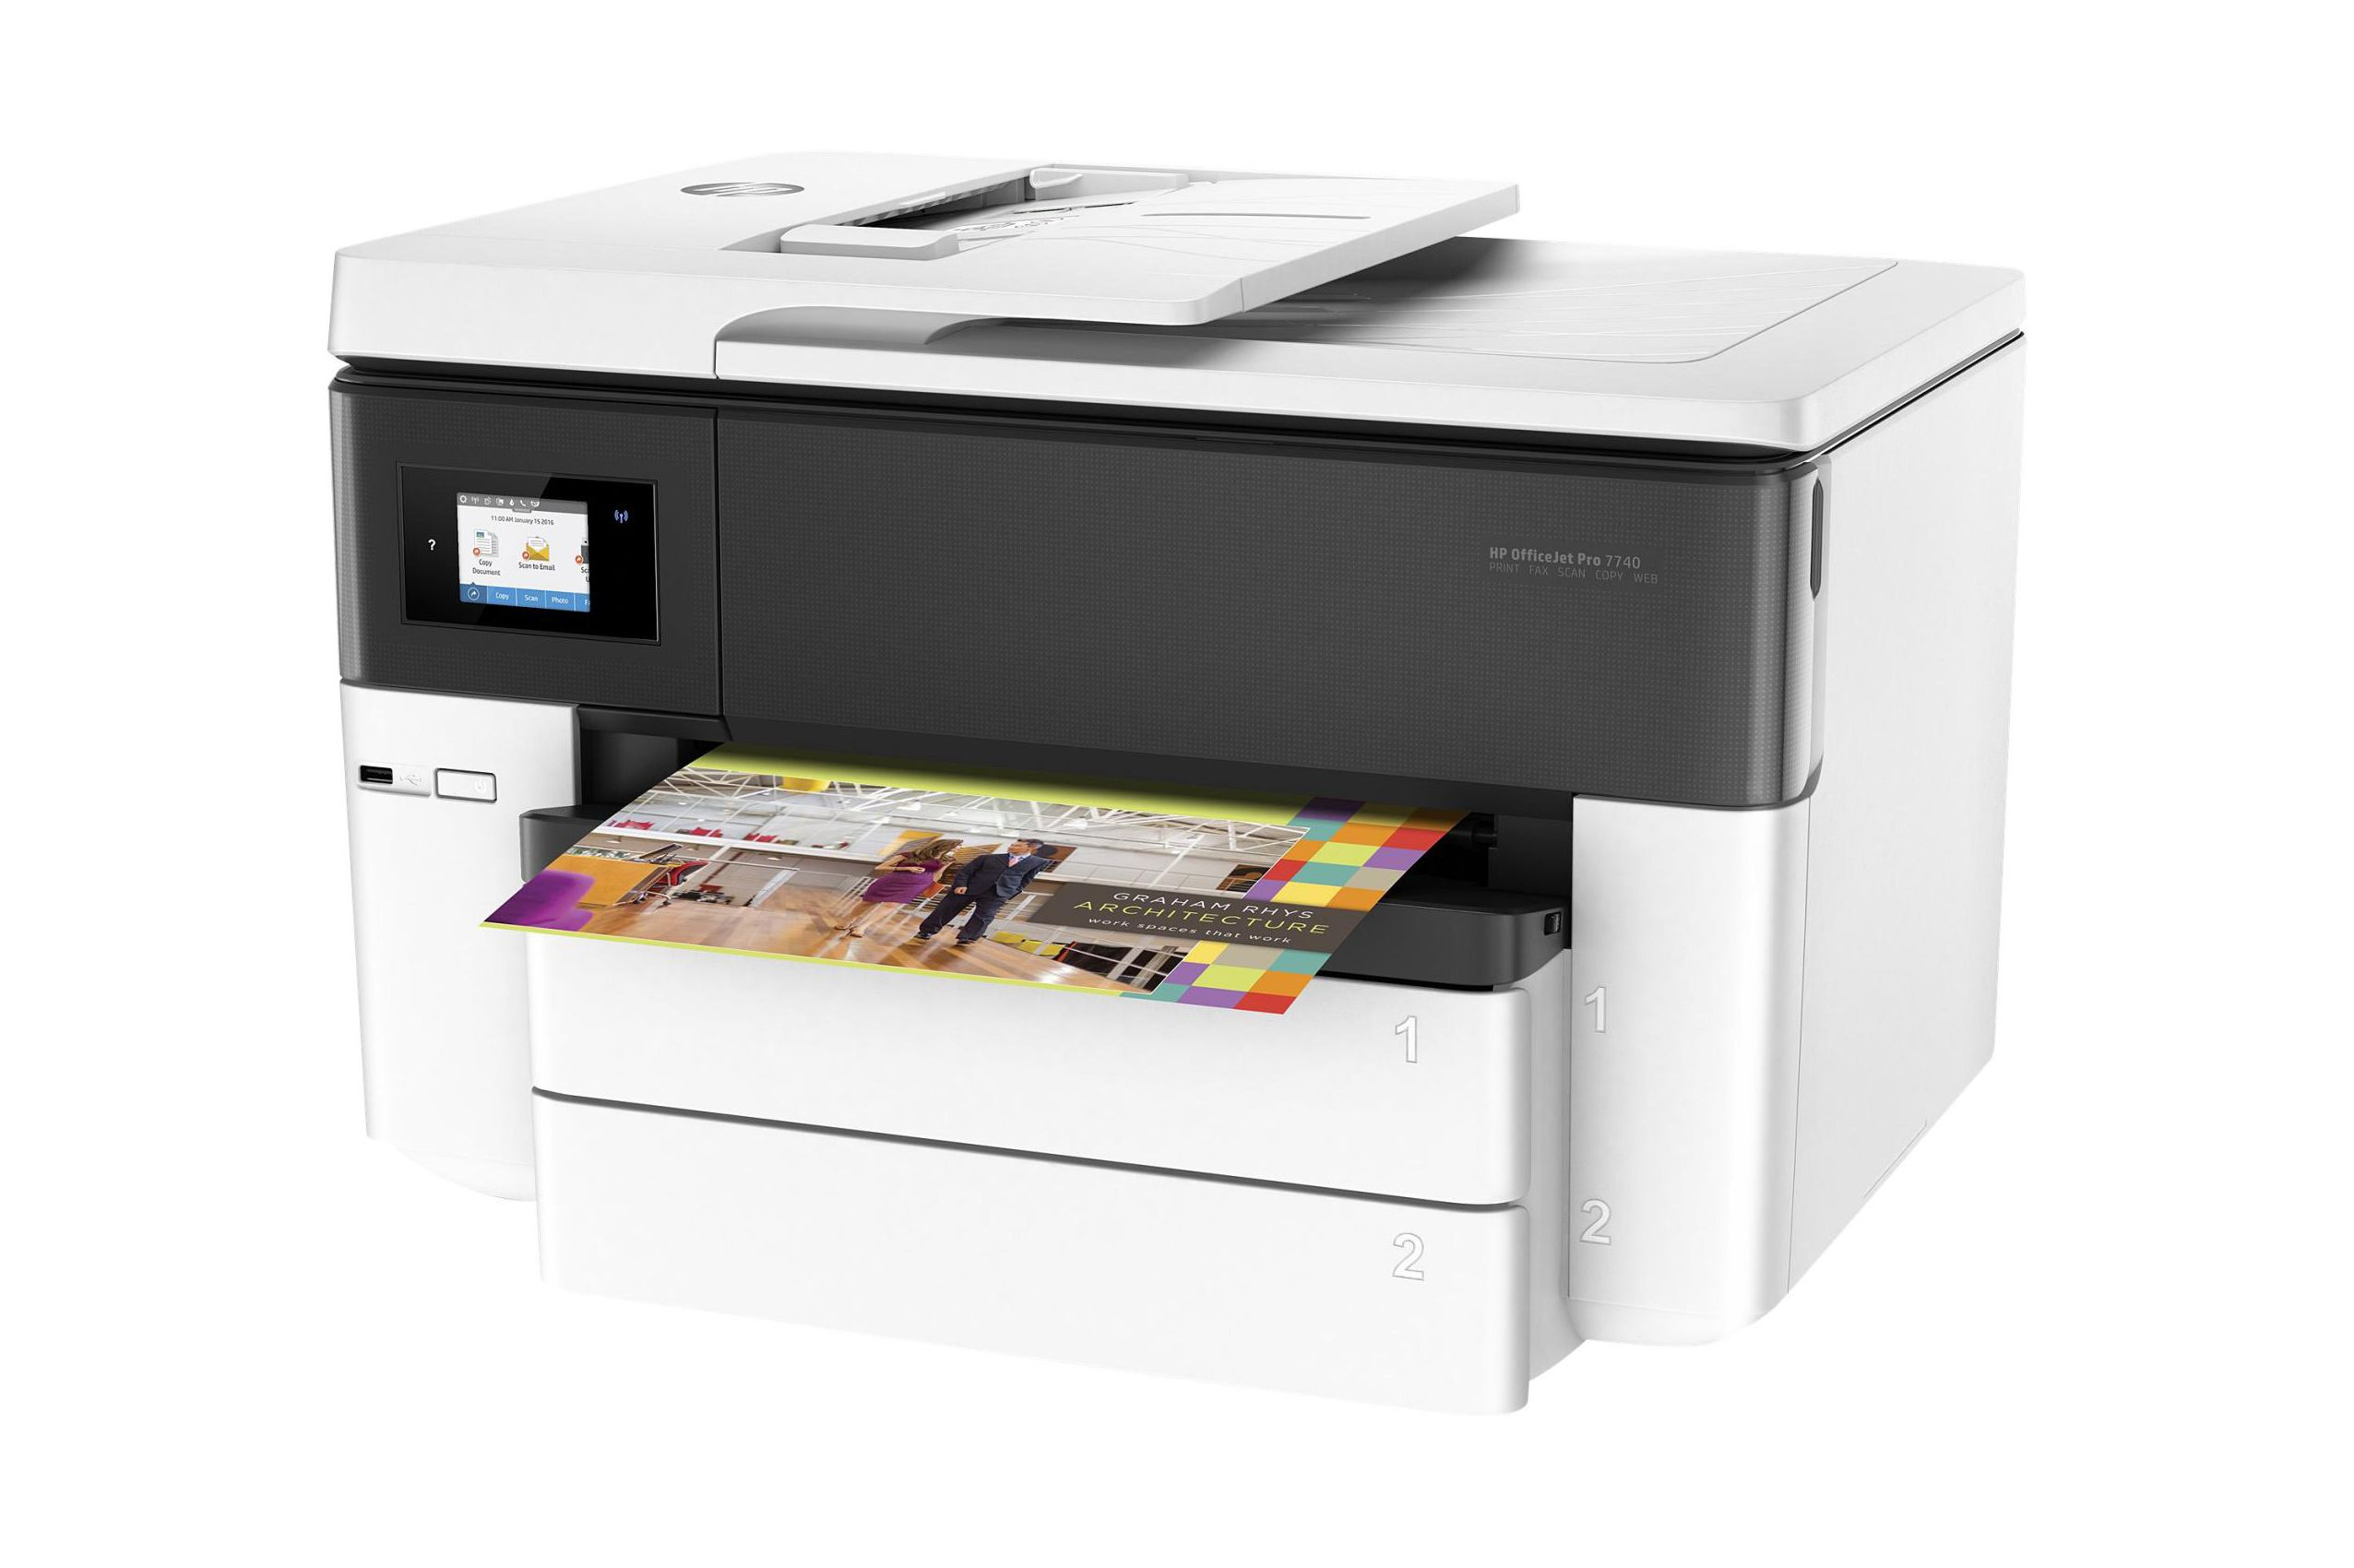 business printers office features imageclass view canon printer side